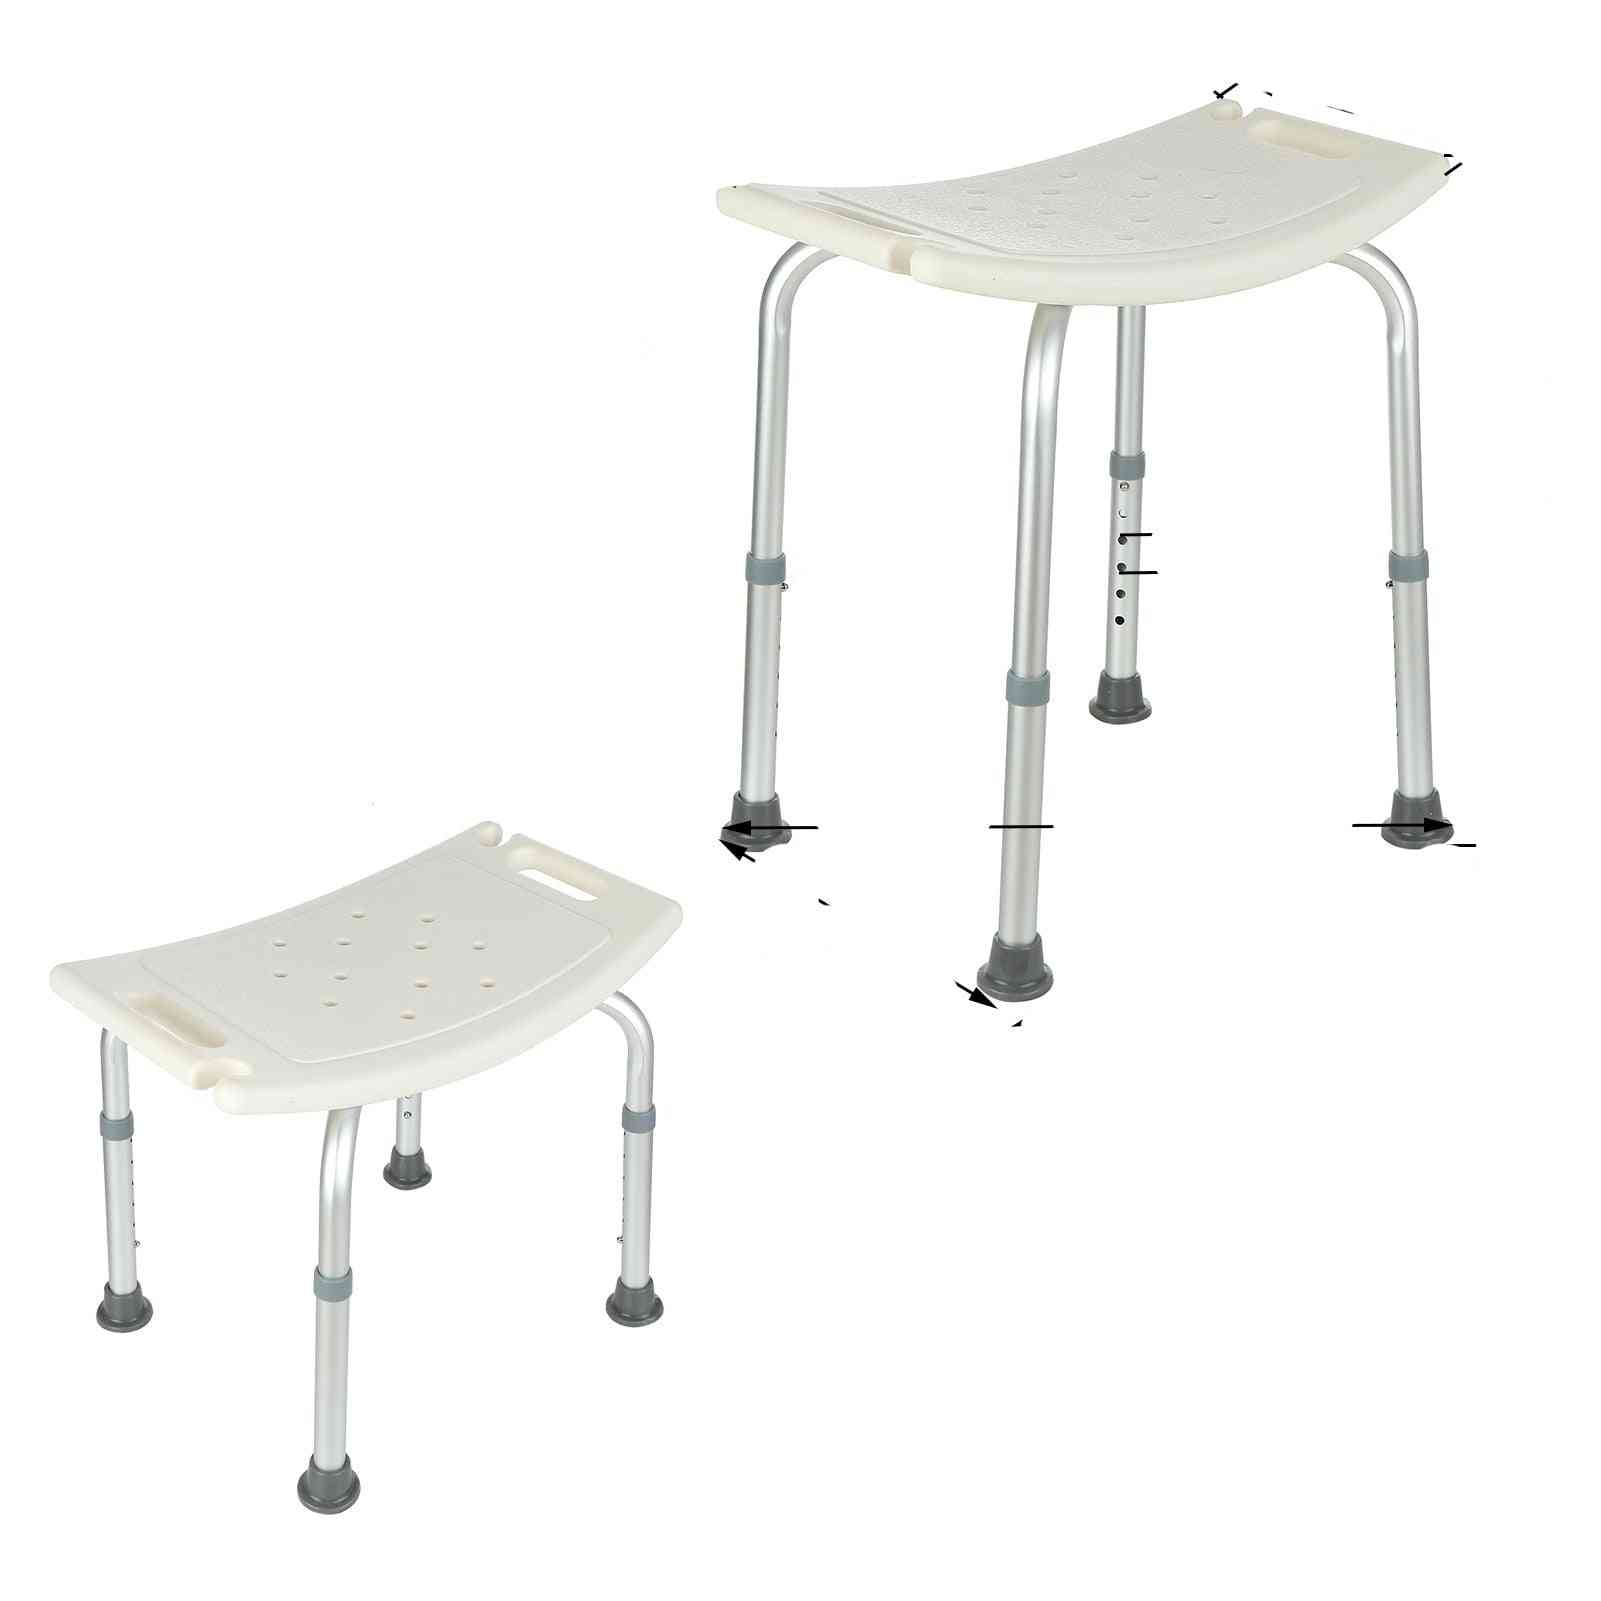 7 Gears Height Bathroom And Shower Chair Adjustable Bench Stool Seat